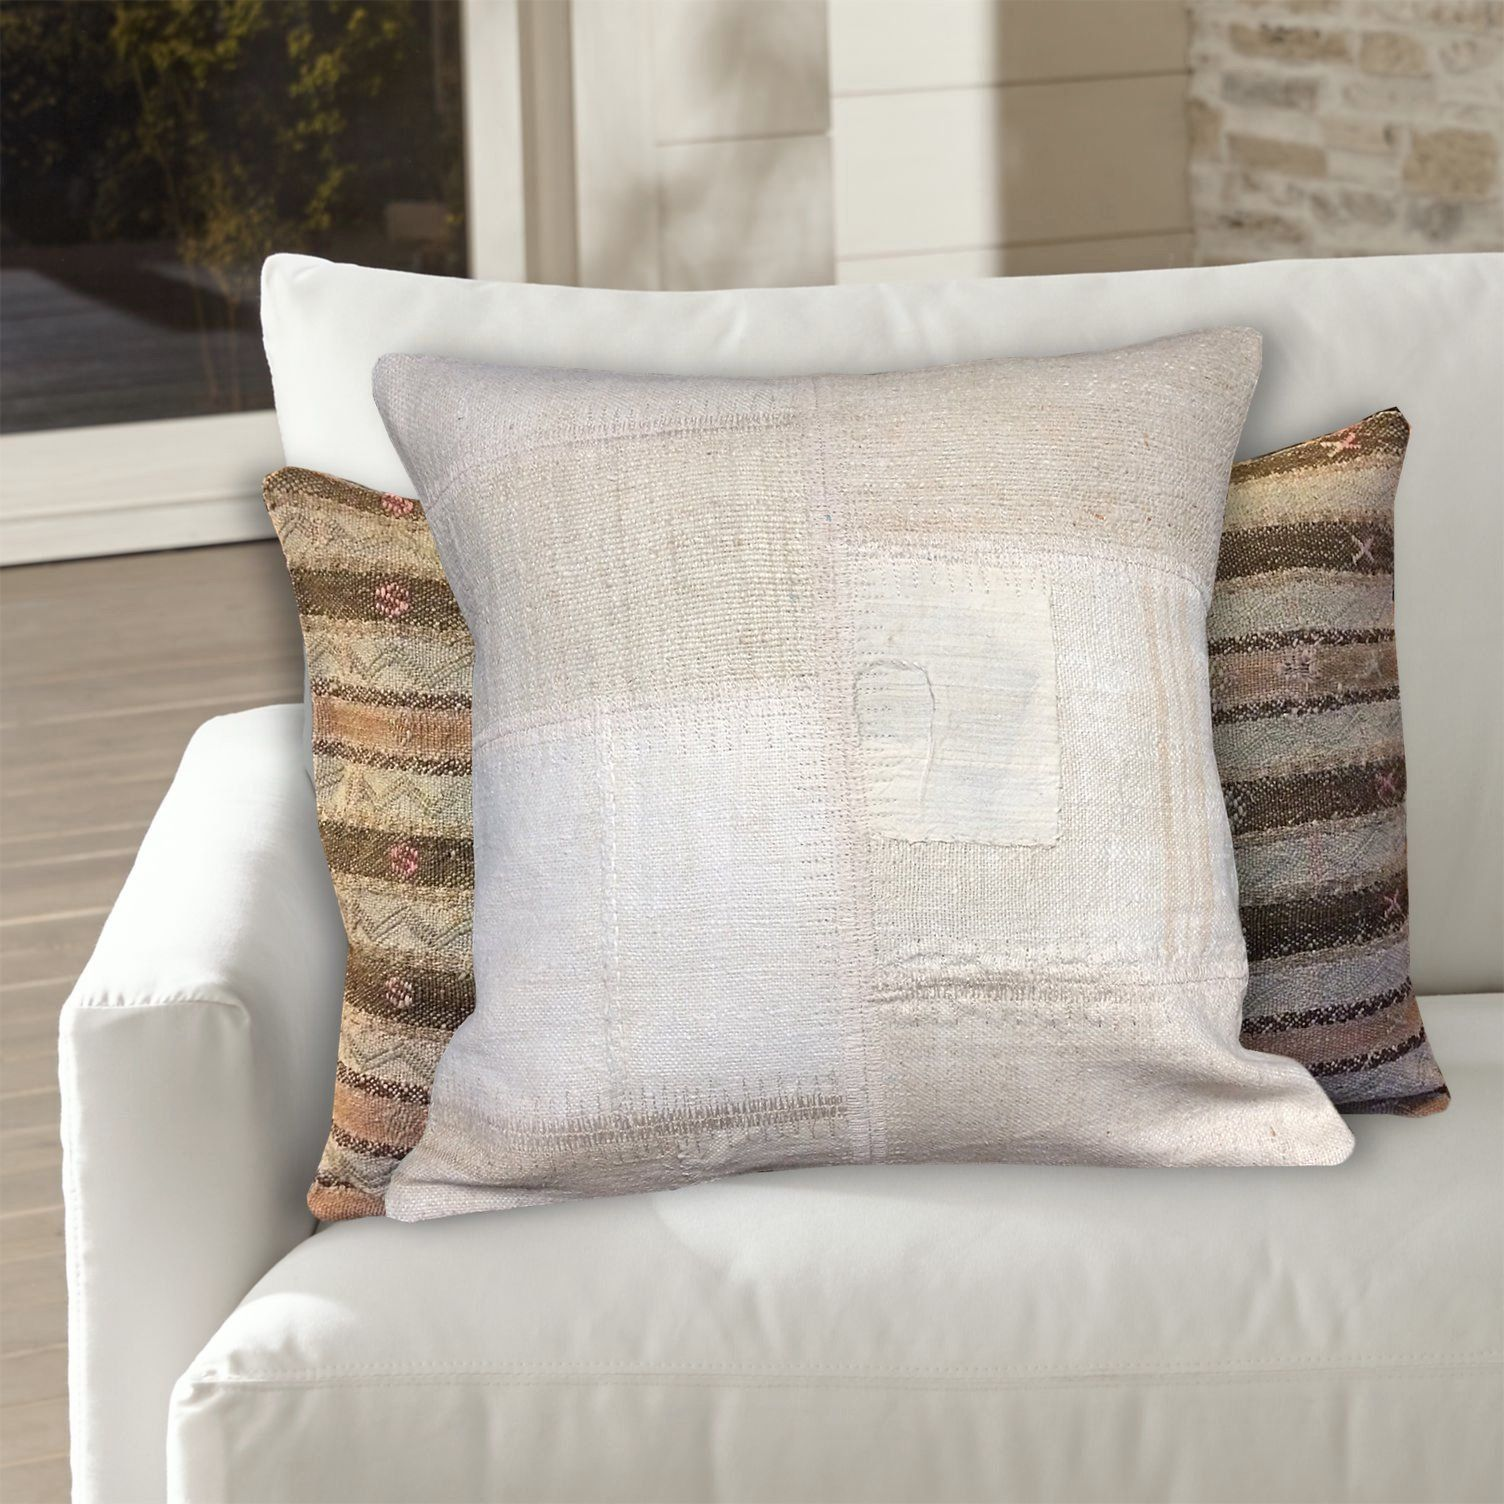 Cream White Patchwork Pillow 20x20 Kilim Pillow Cover Large